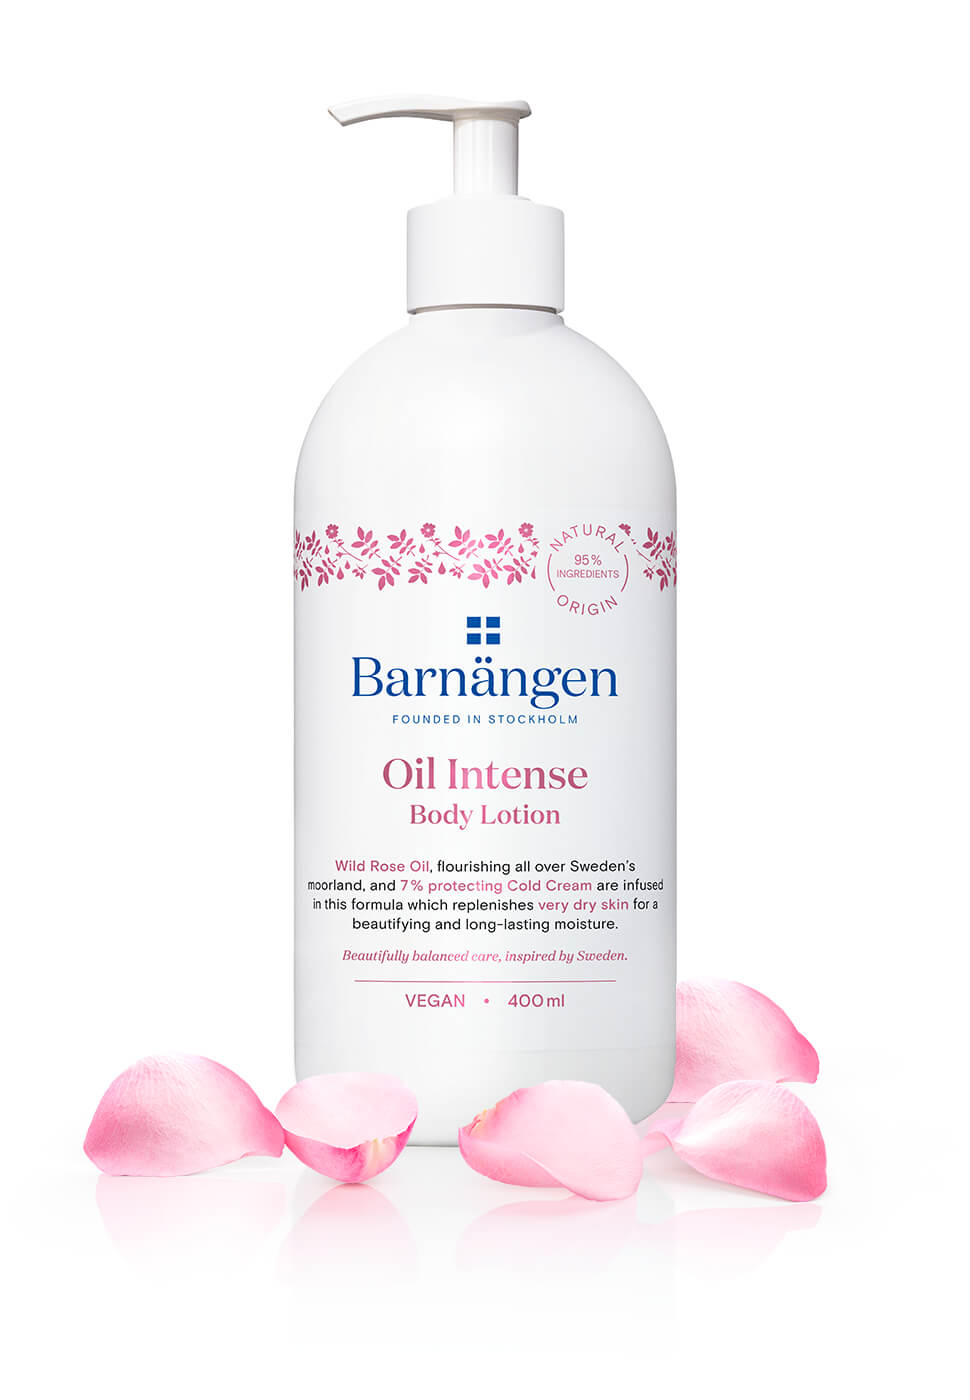 barnangen_nordic_care_oil_intense_BL_970x1400